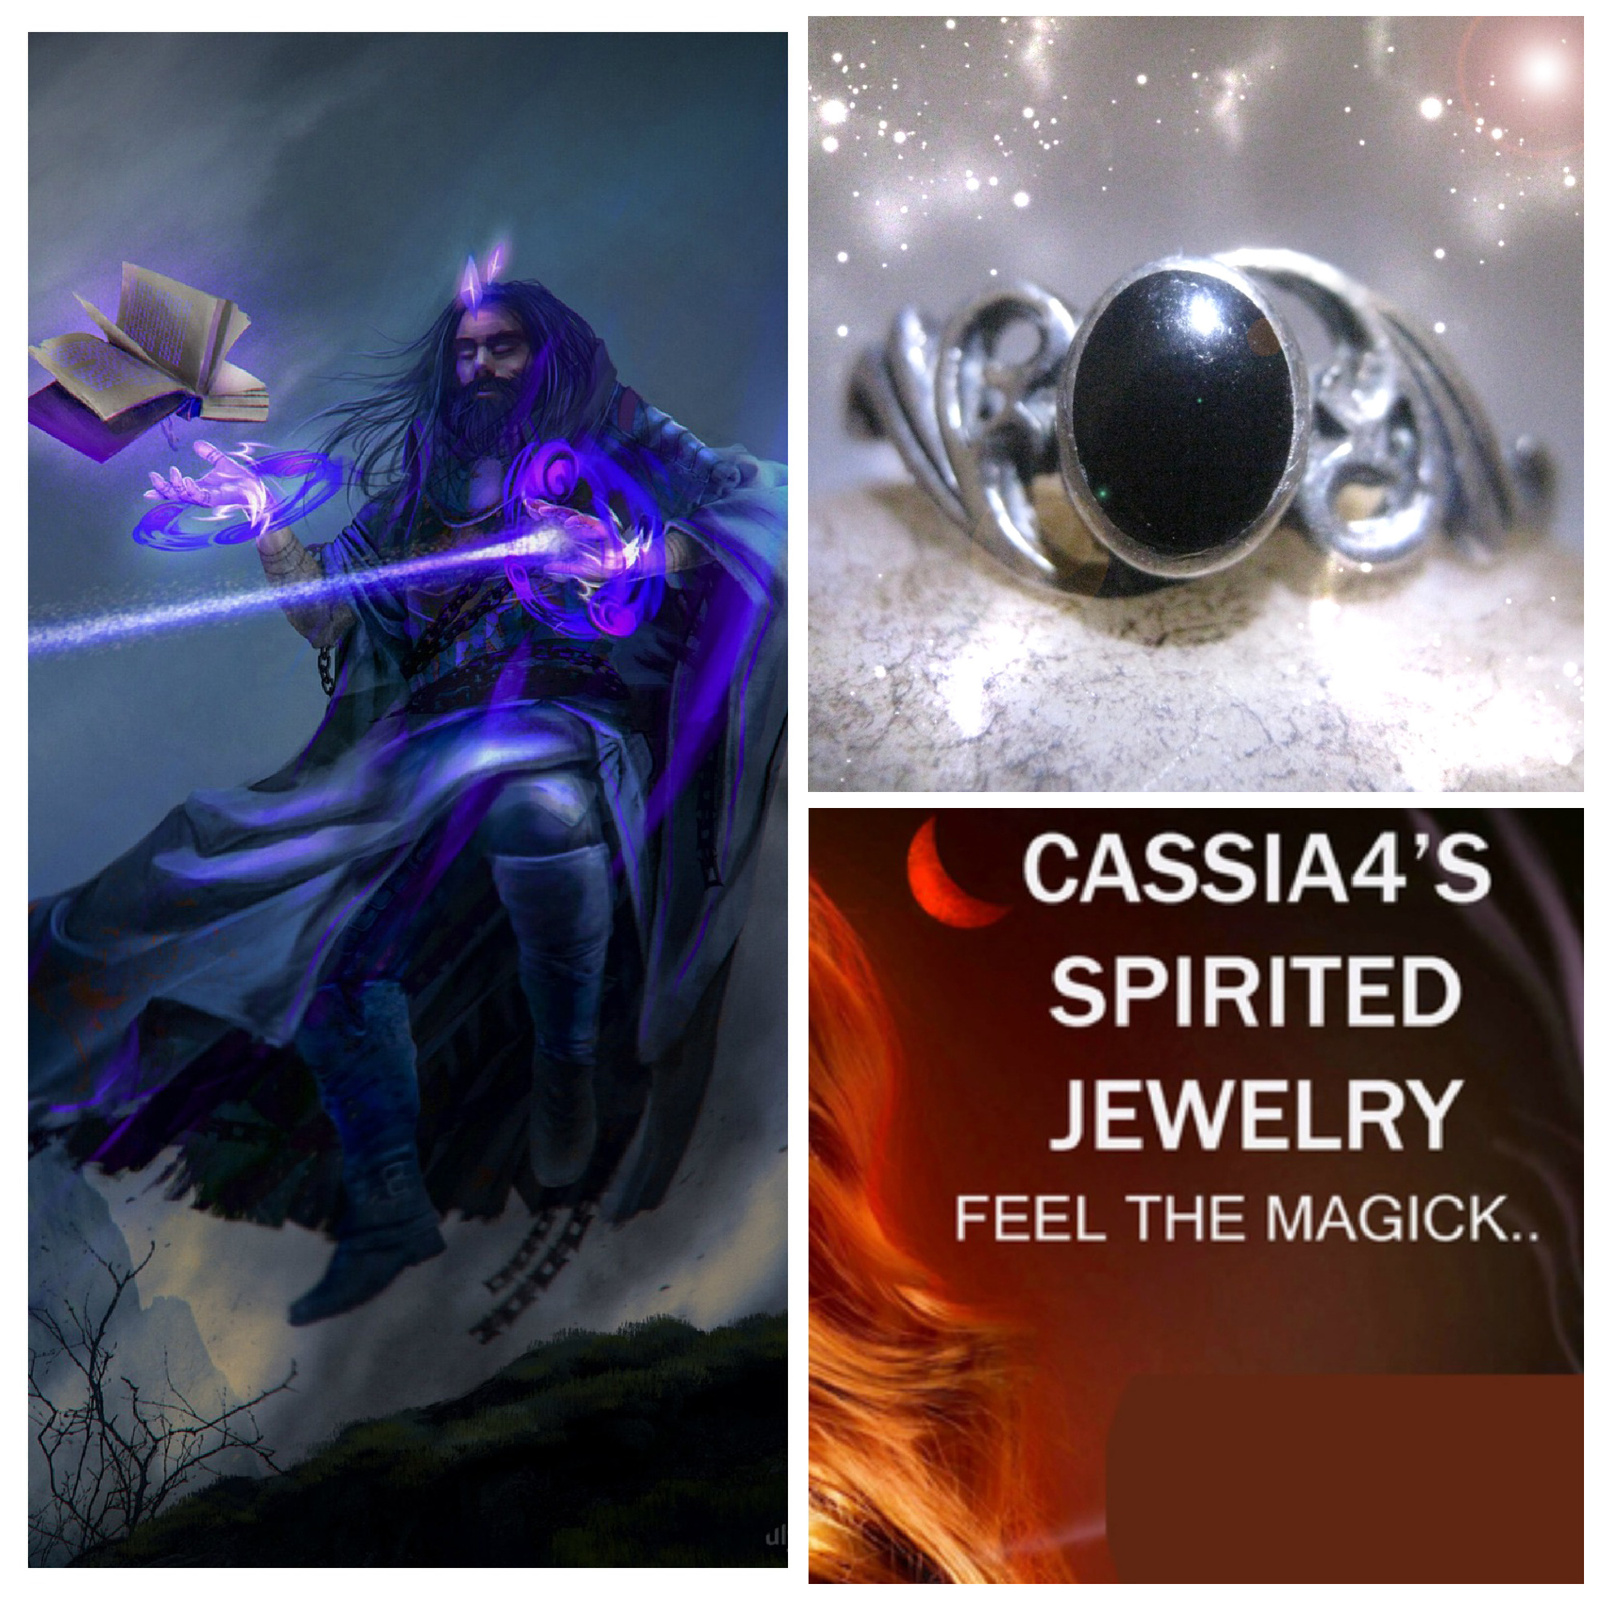 Primary image for Haunted RING DARKEST NIGHT VAMPIRE WIZARD SPIRIT VESSEL MAGICK WITCH CASSIA4